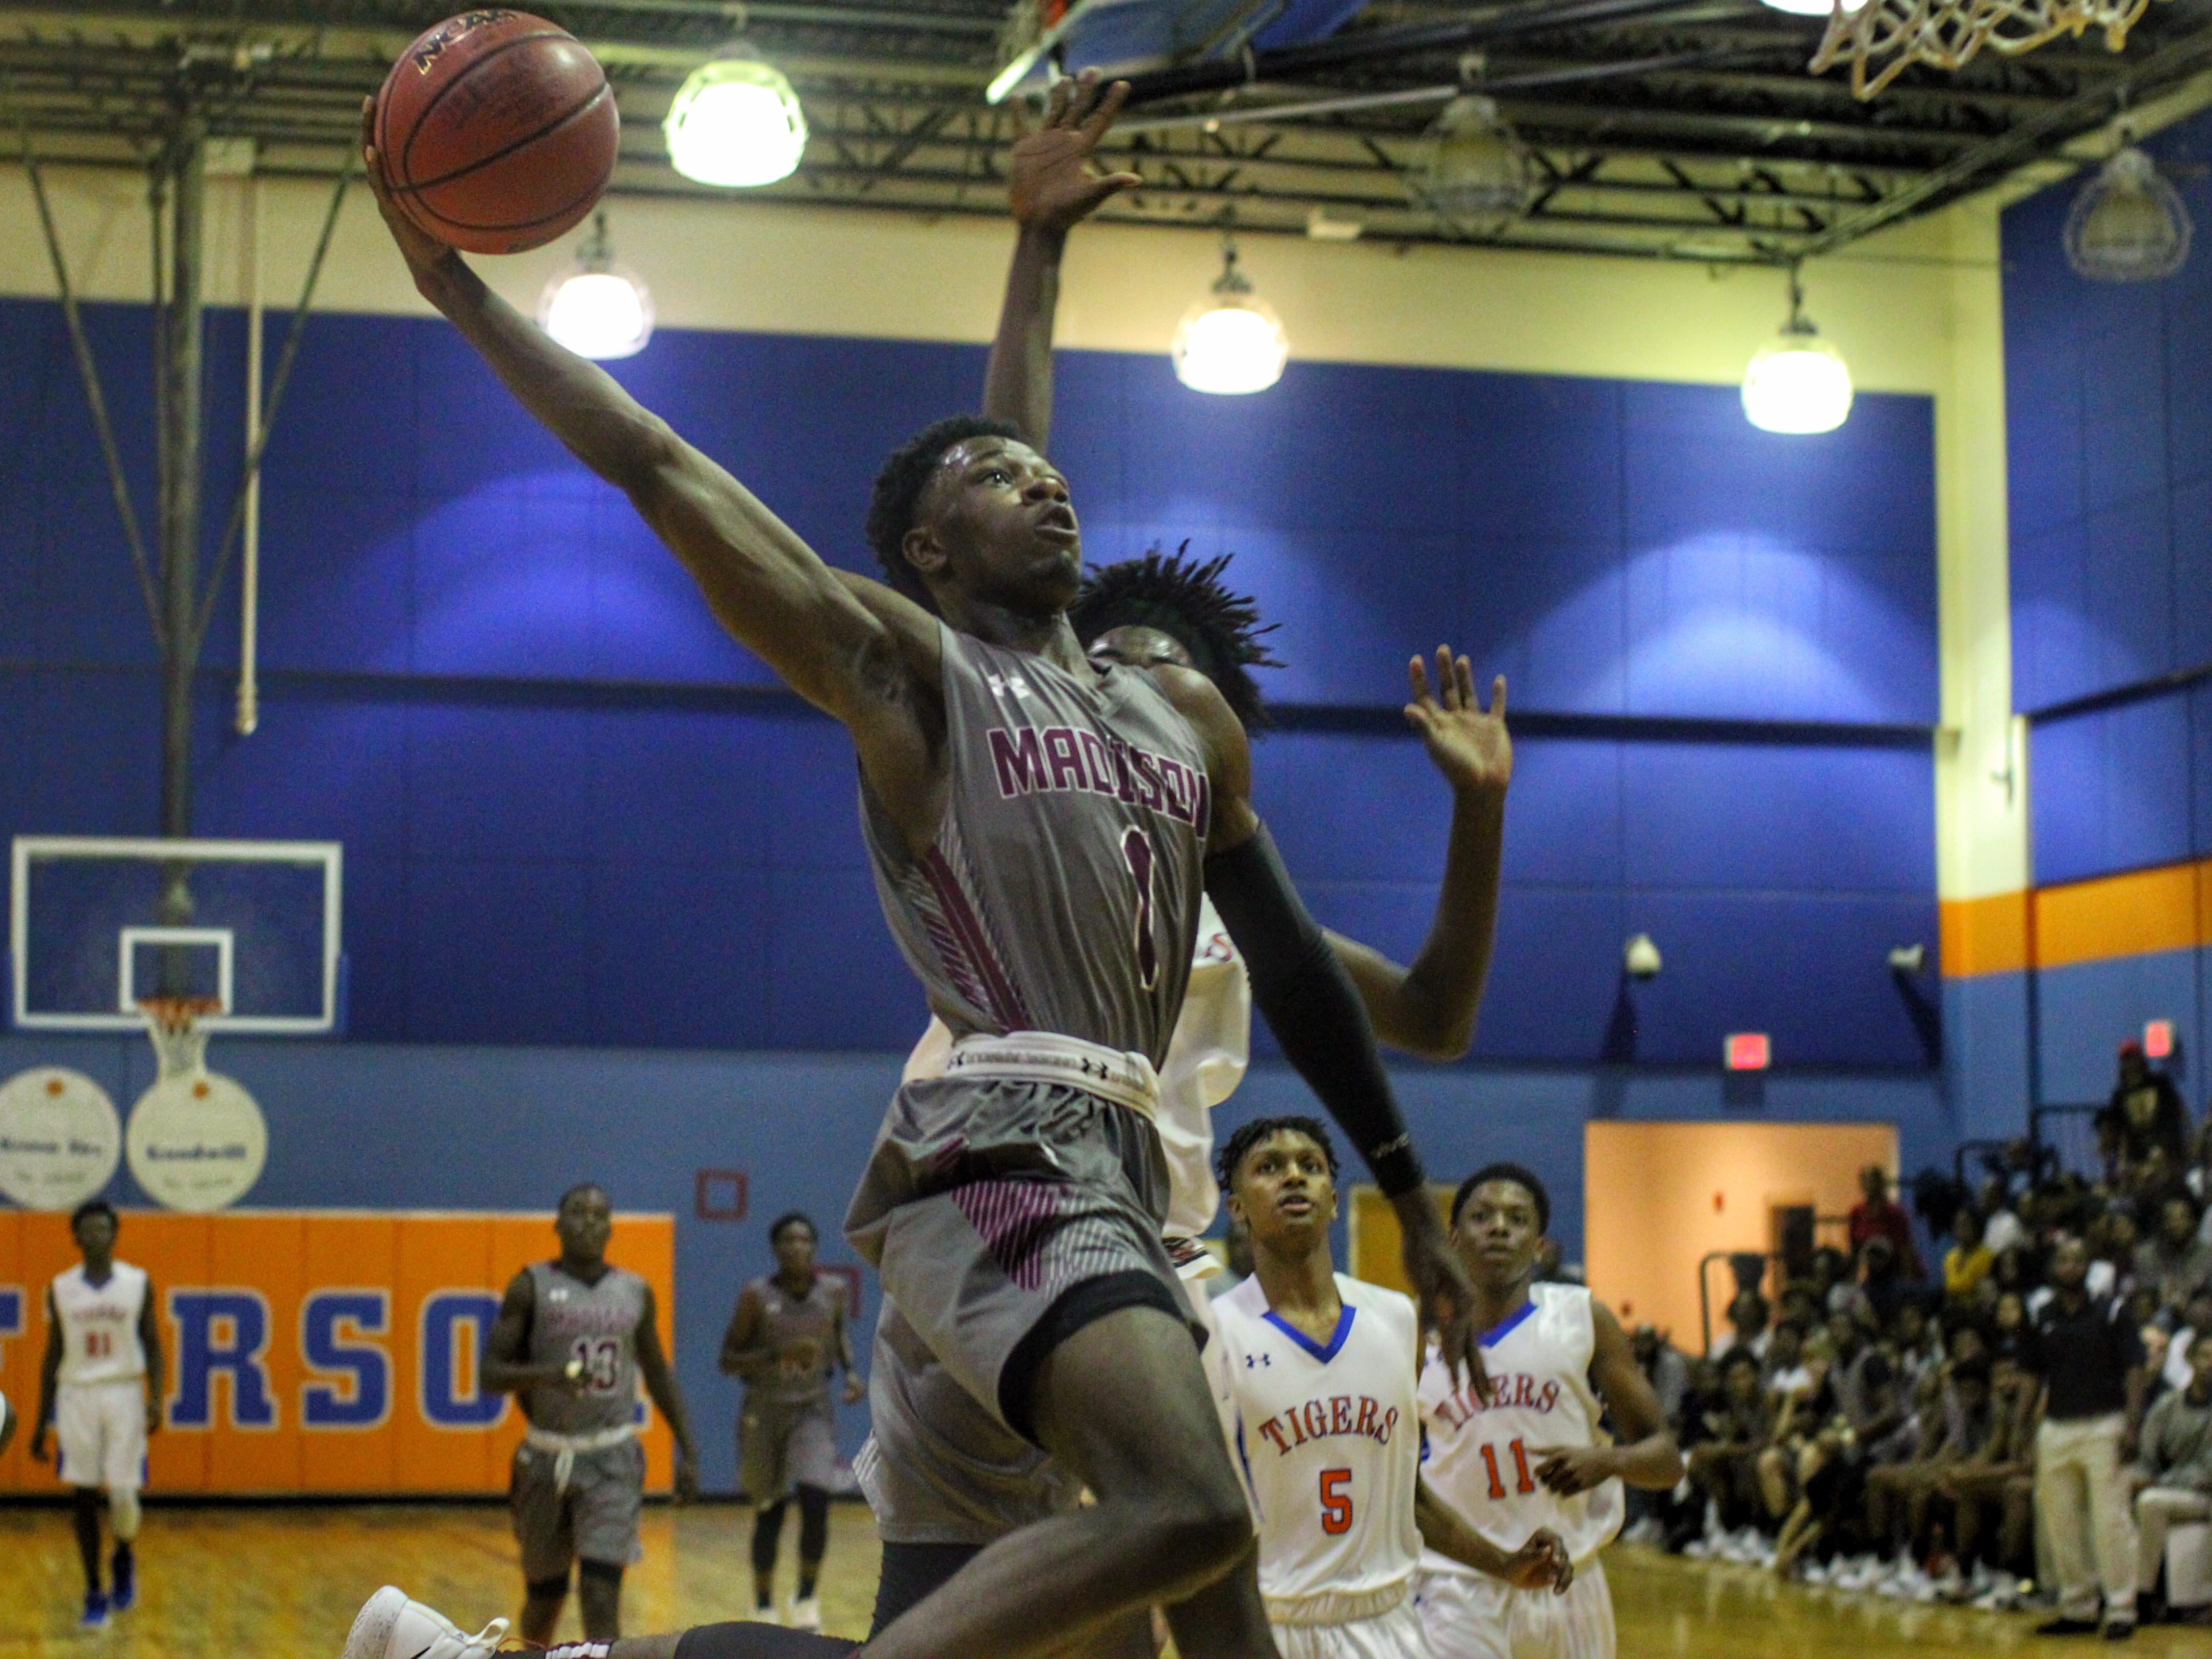 Madison County's Vincenta Mitchell soars in for a dunk attempt in a win over Jefferson County on Jan. 3, 2019.